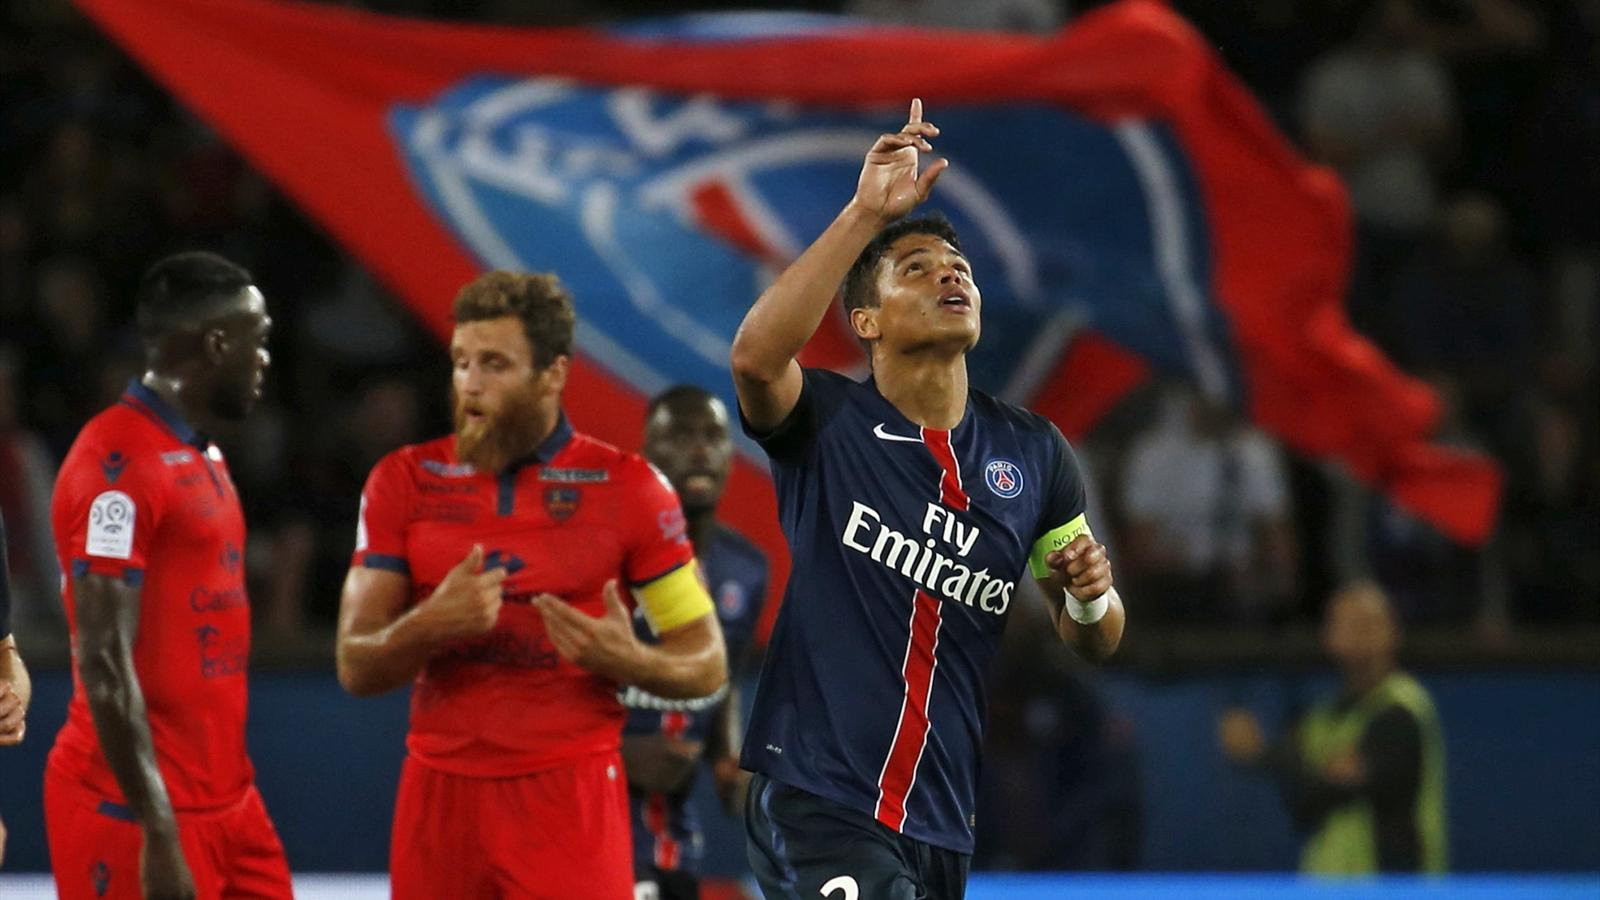 Paris St Germain's Thiago Silva celebrates his goal during their French Ligue 1 soccer match against Ajaccio at the Parc des Princes Stadium in Paris, August 16, 2015. REUTERS/Pascal Rossignol